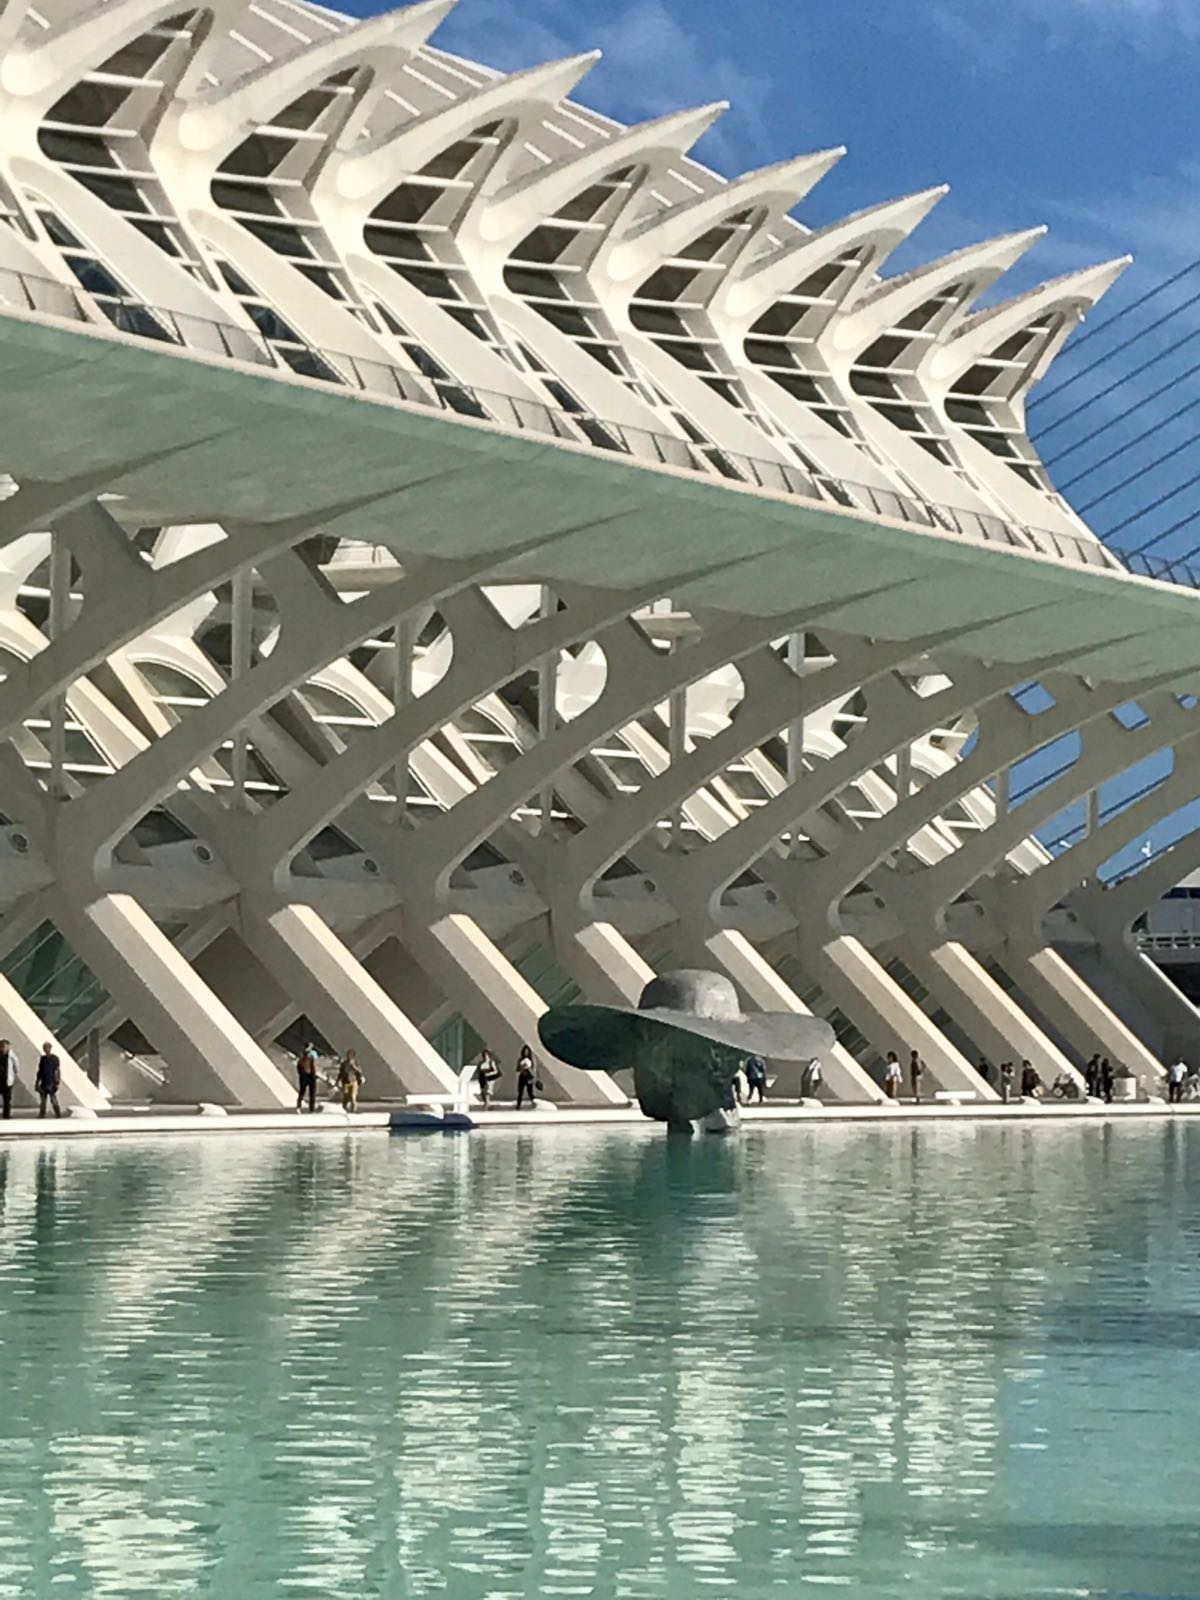 Spikey side of the Valencia science museum with a metal sculpture in the pool in front of a lady with a big hat